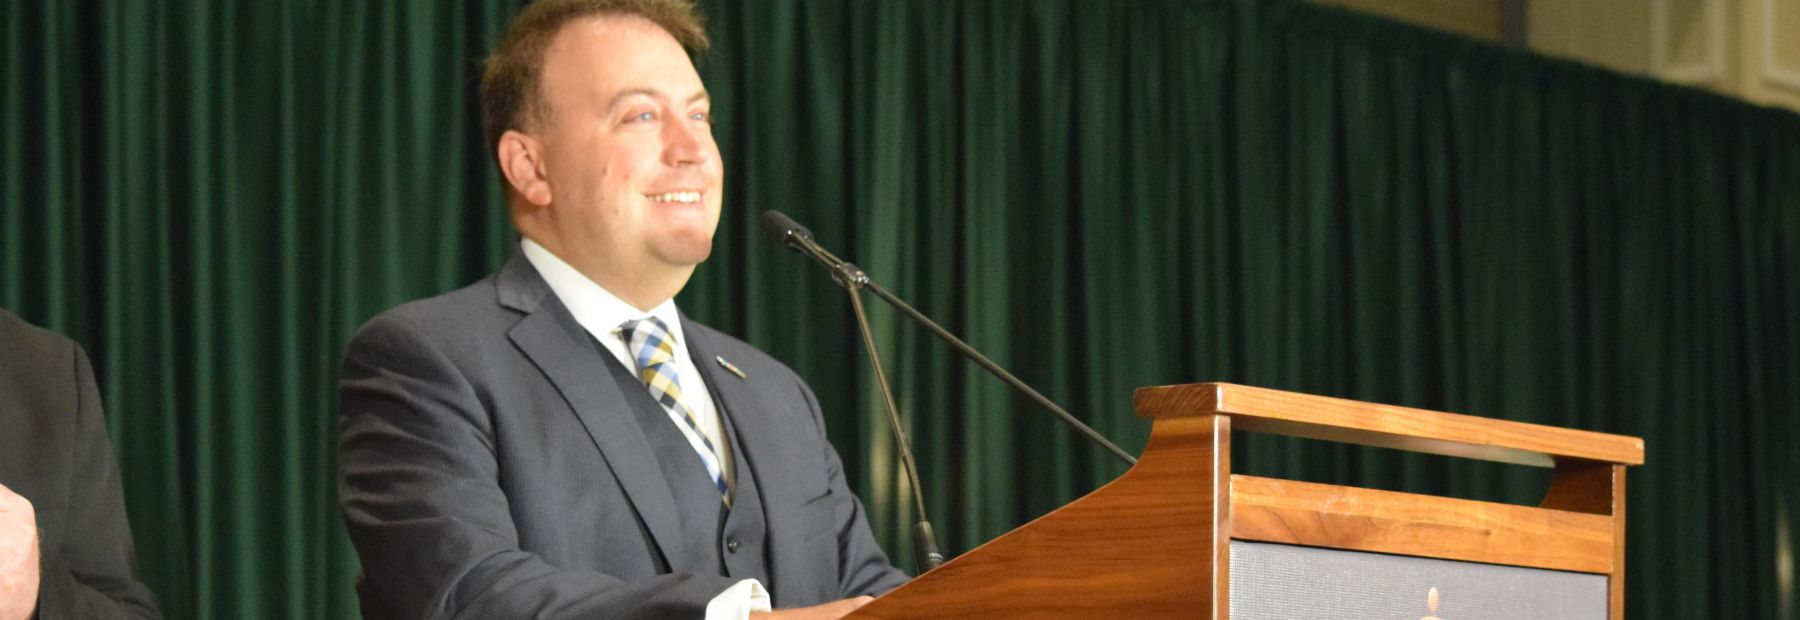 NFB President Mark A. Riccobono stands at the podium as he delivers an address during our national convention.